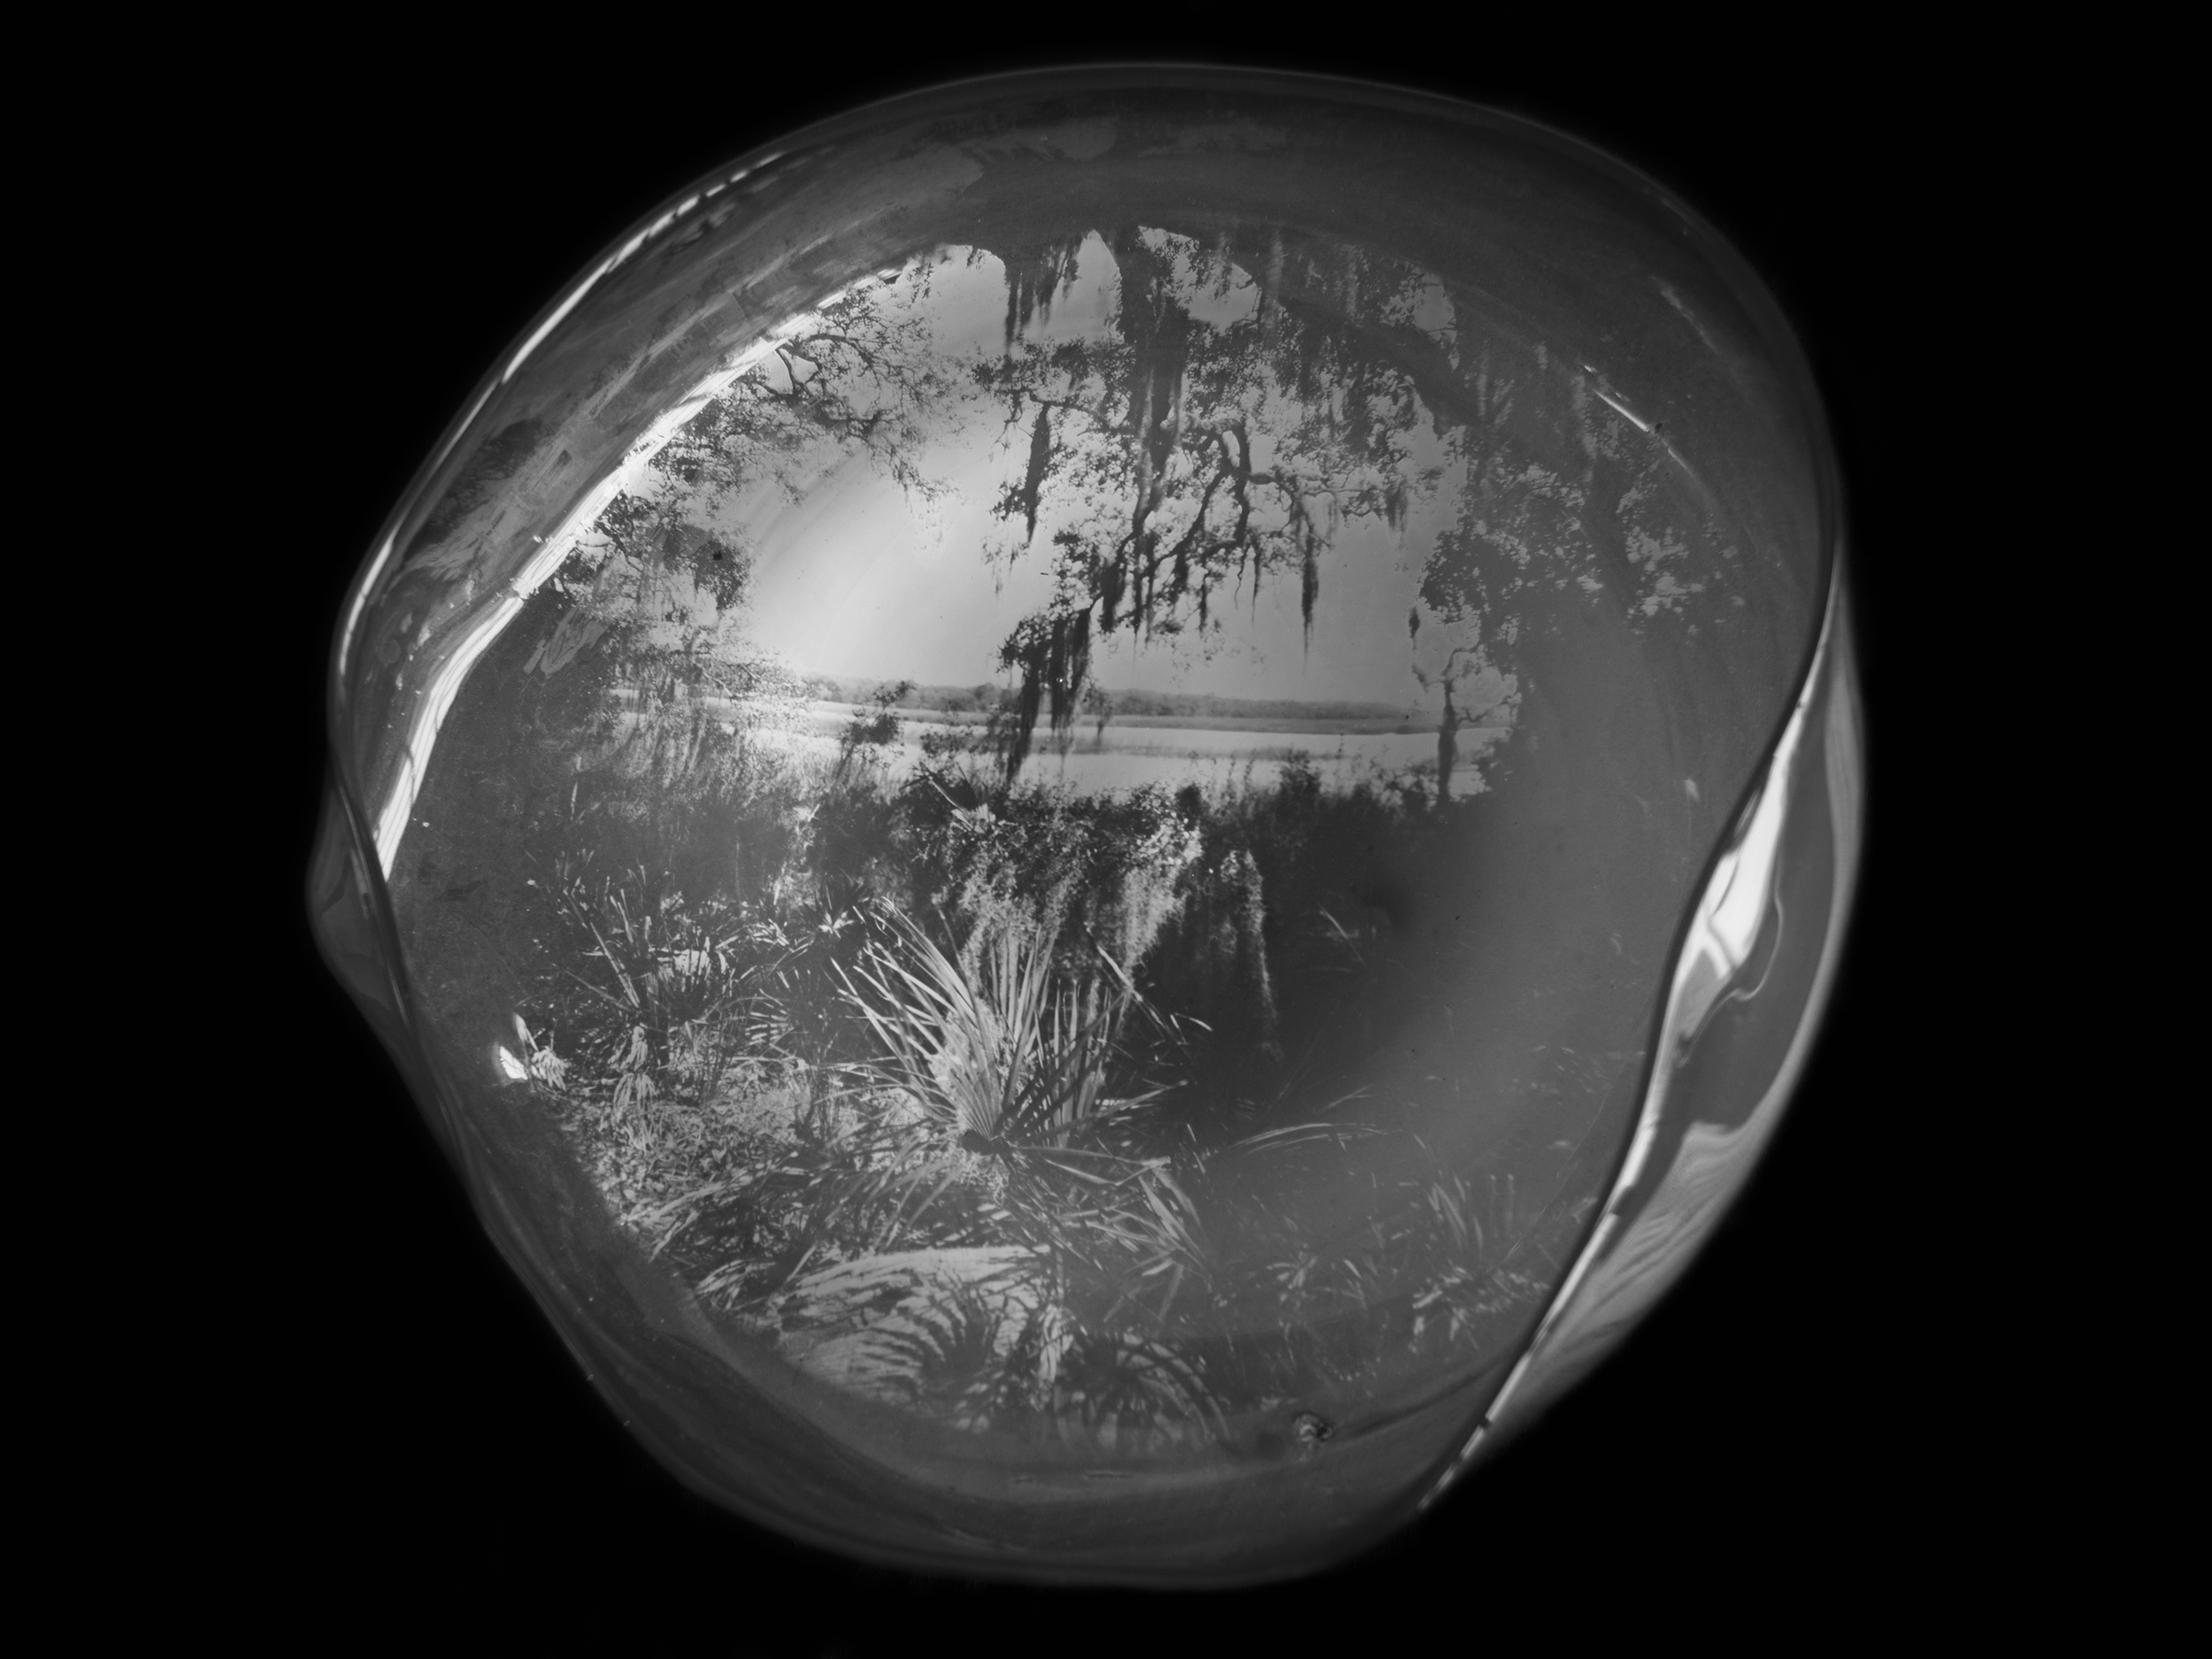 NEGATIVE AMBROTYPE - SEMI-TRANSPARENT JADE HANDBLOWN GLASS